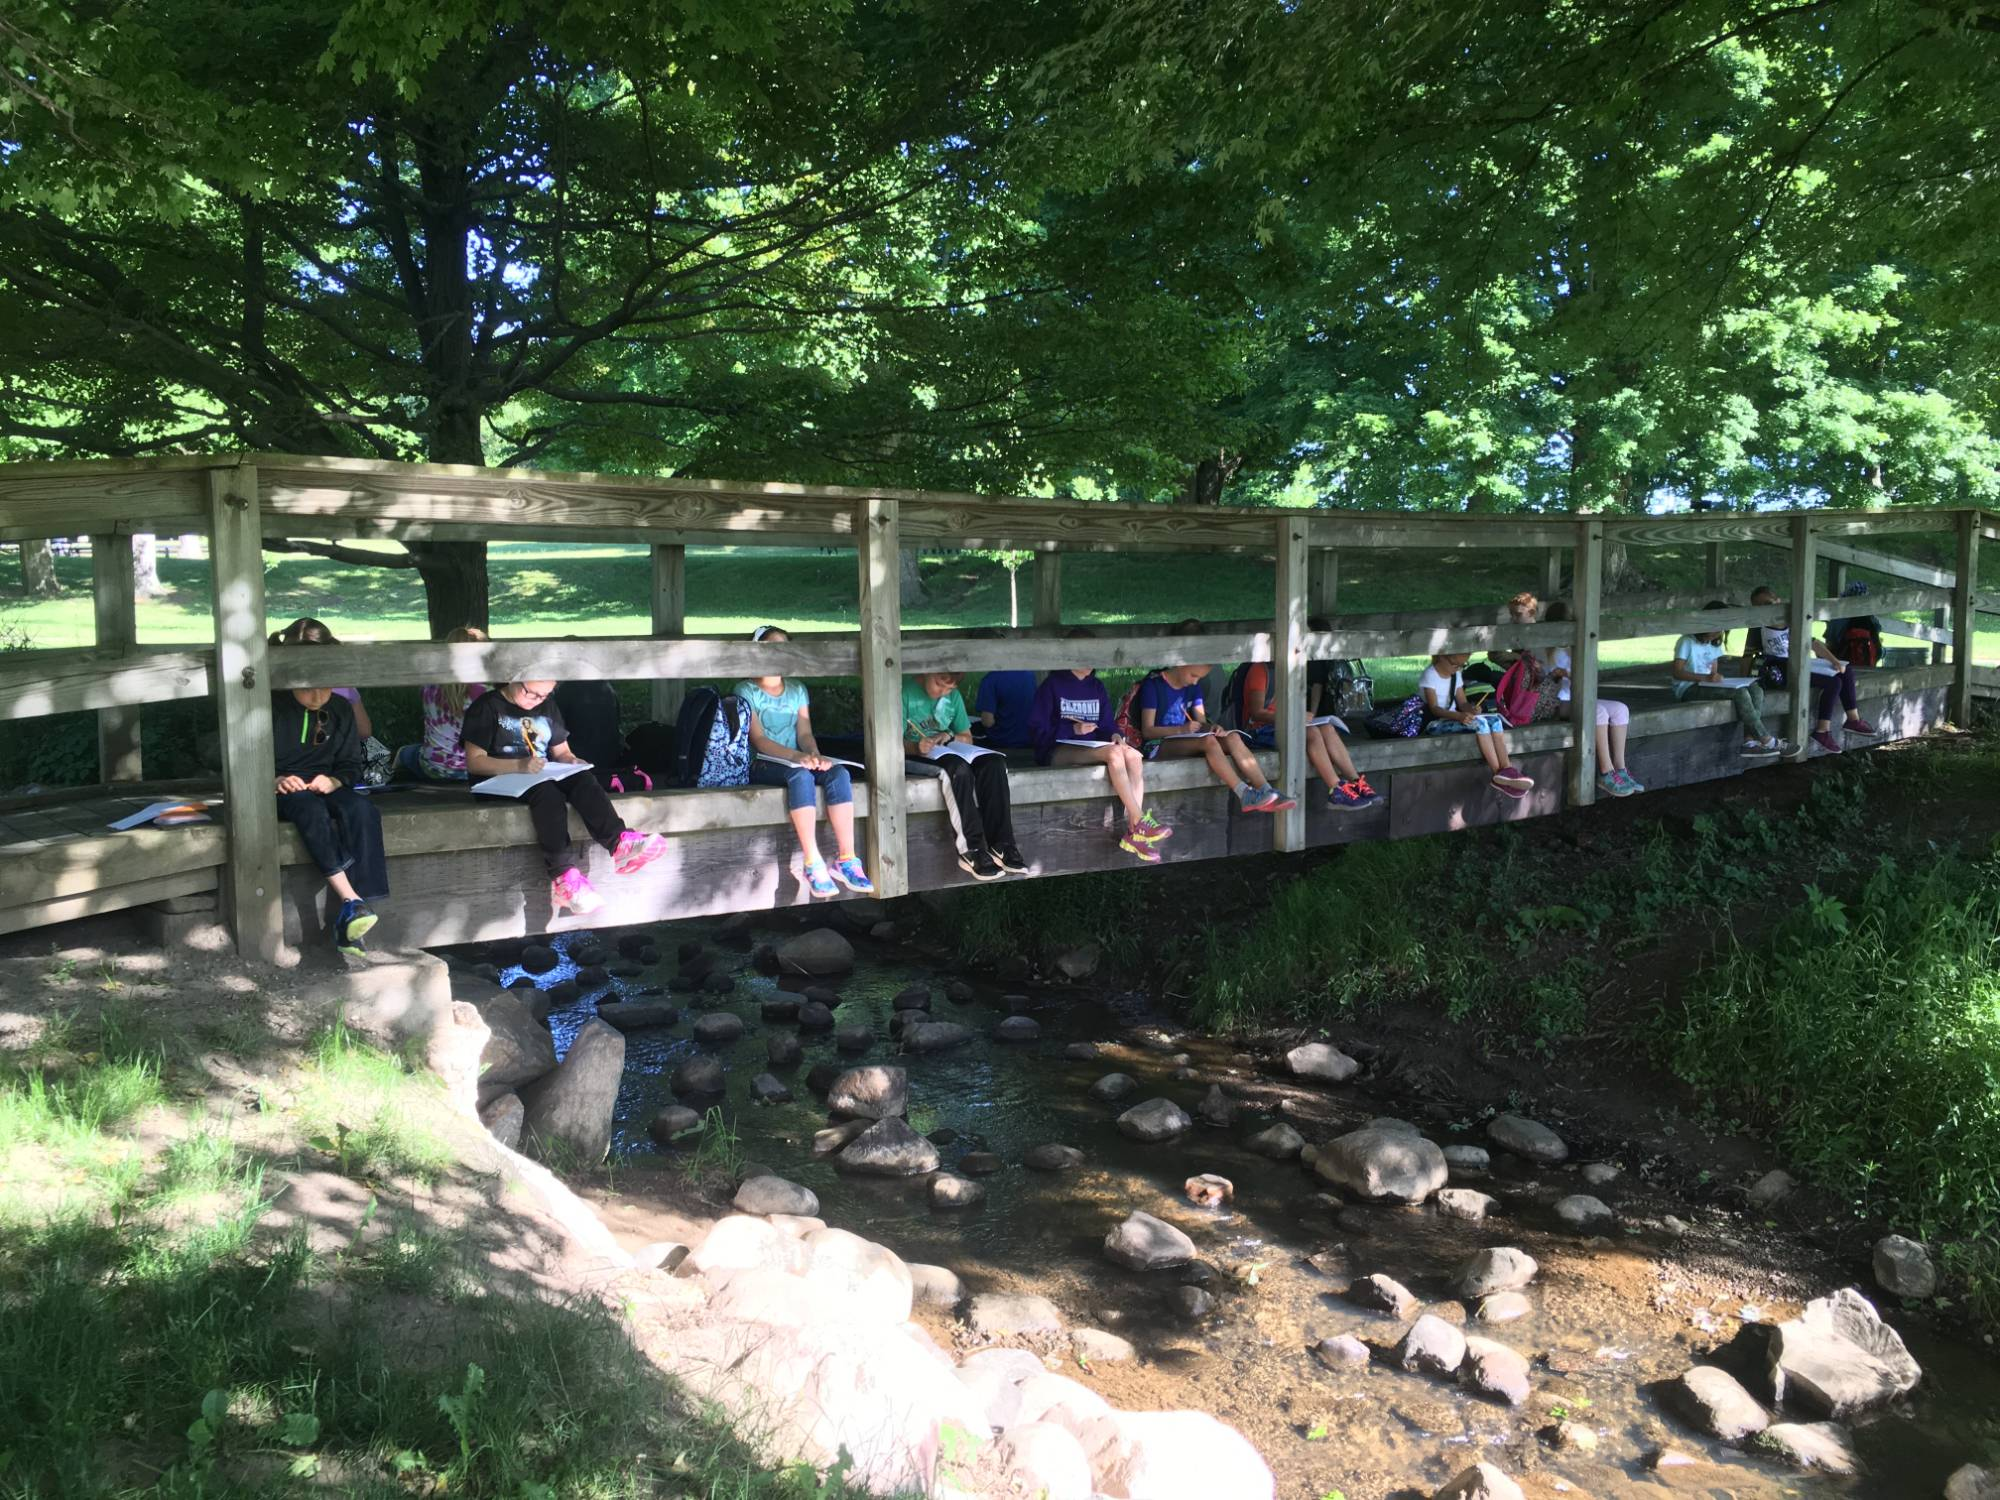 Students sit on bridge above stream